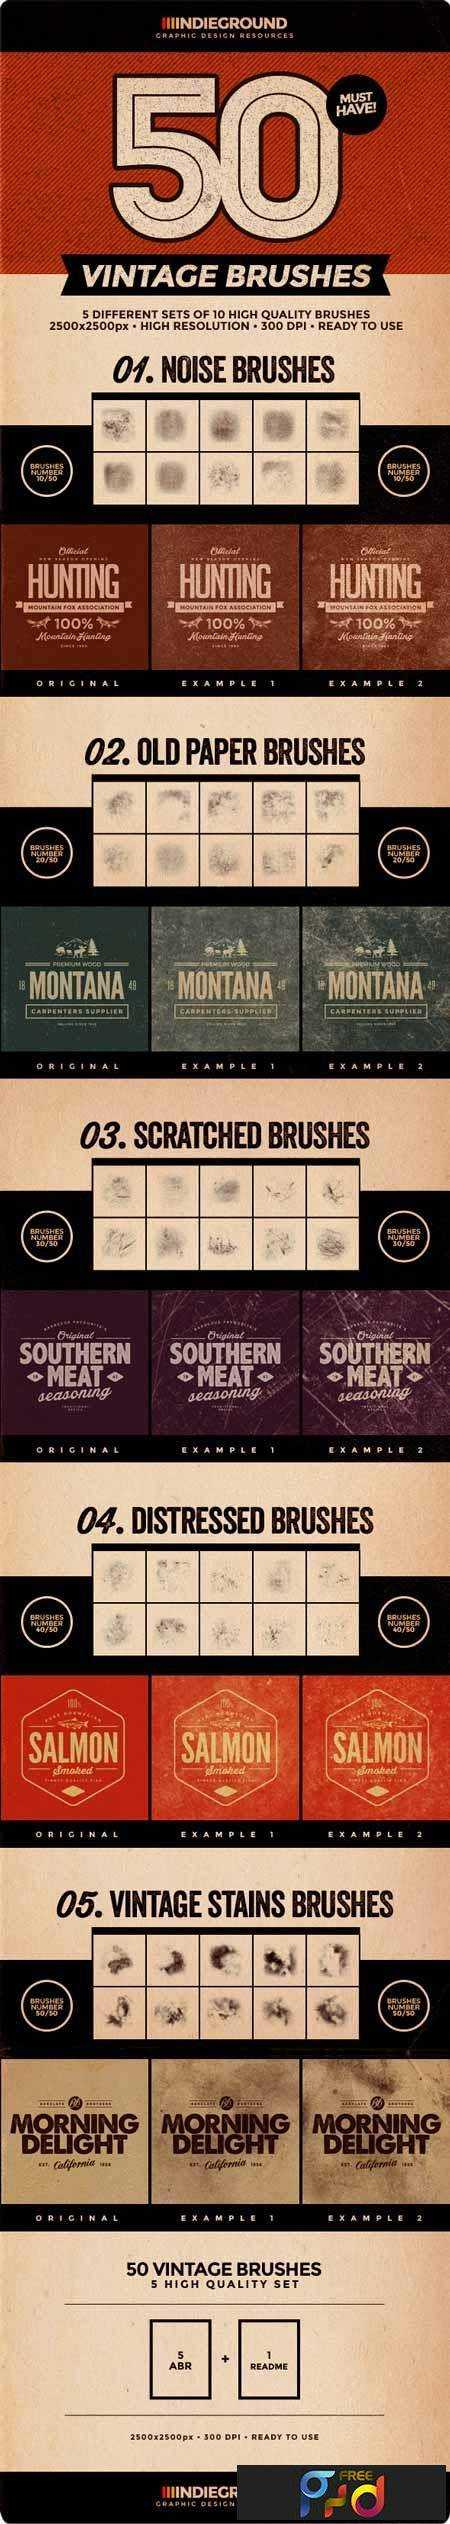 1708186 50 Vintage Brushes Set 8146217 1